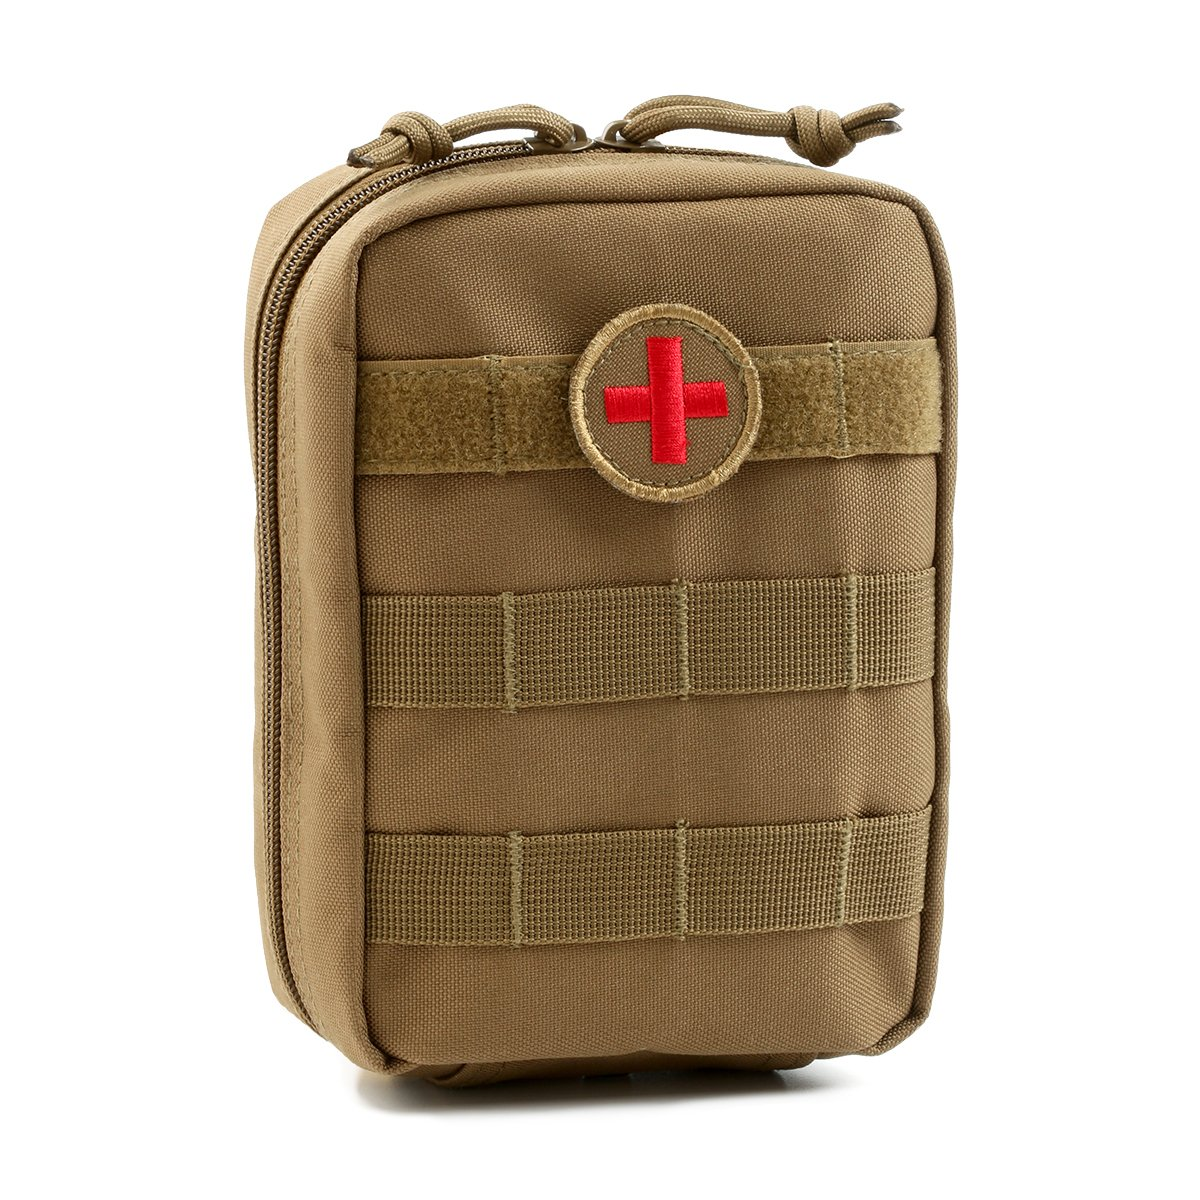 Orca Tactical MOLLE EMT Medical First Aid Pouch (Black) C860